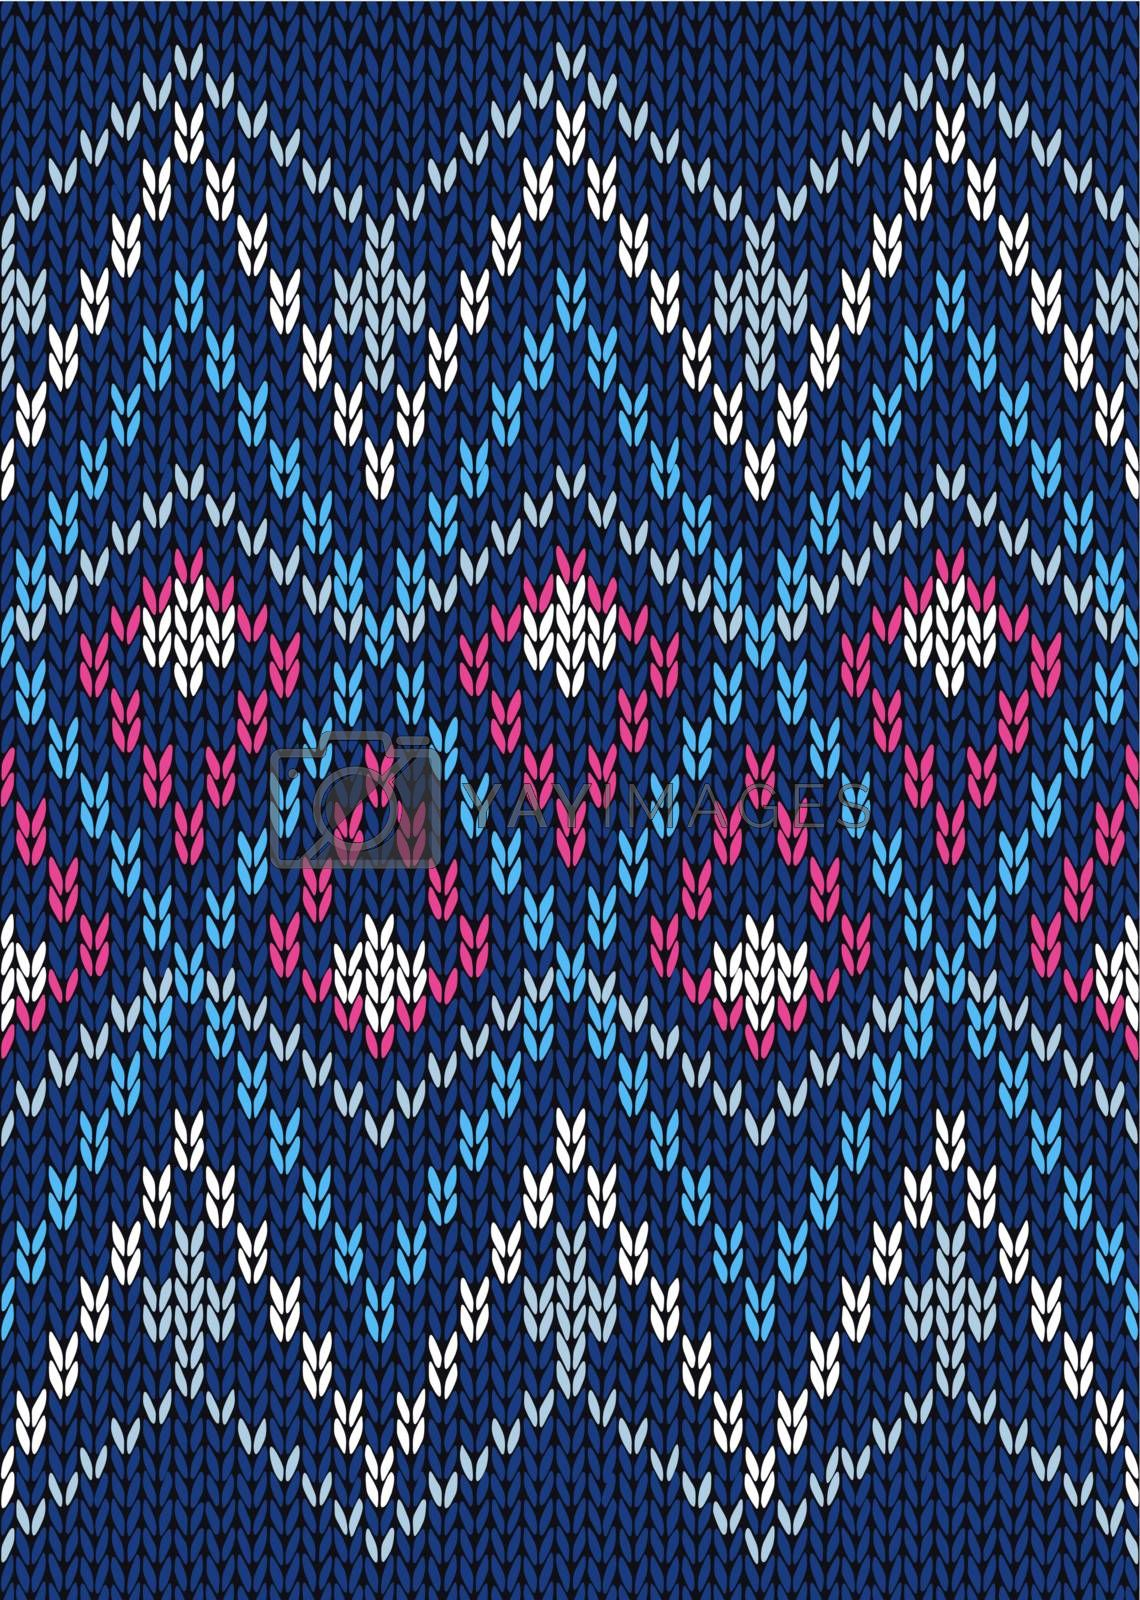 Seamless Ornamental Male Style Knitted Vector Pattern